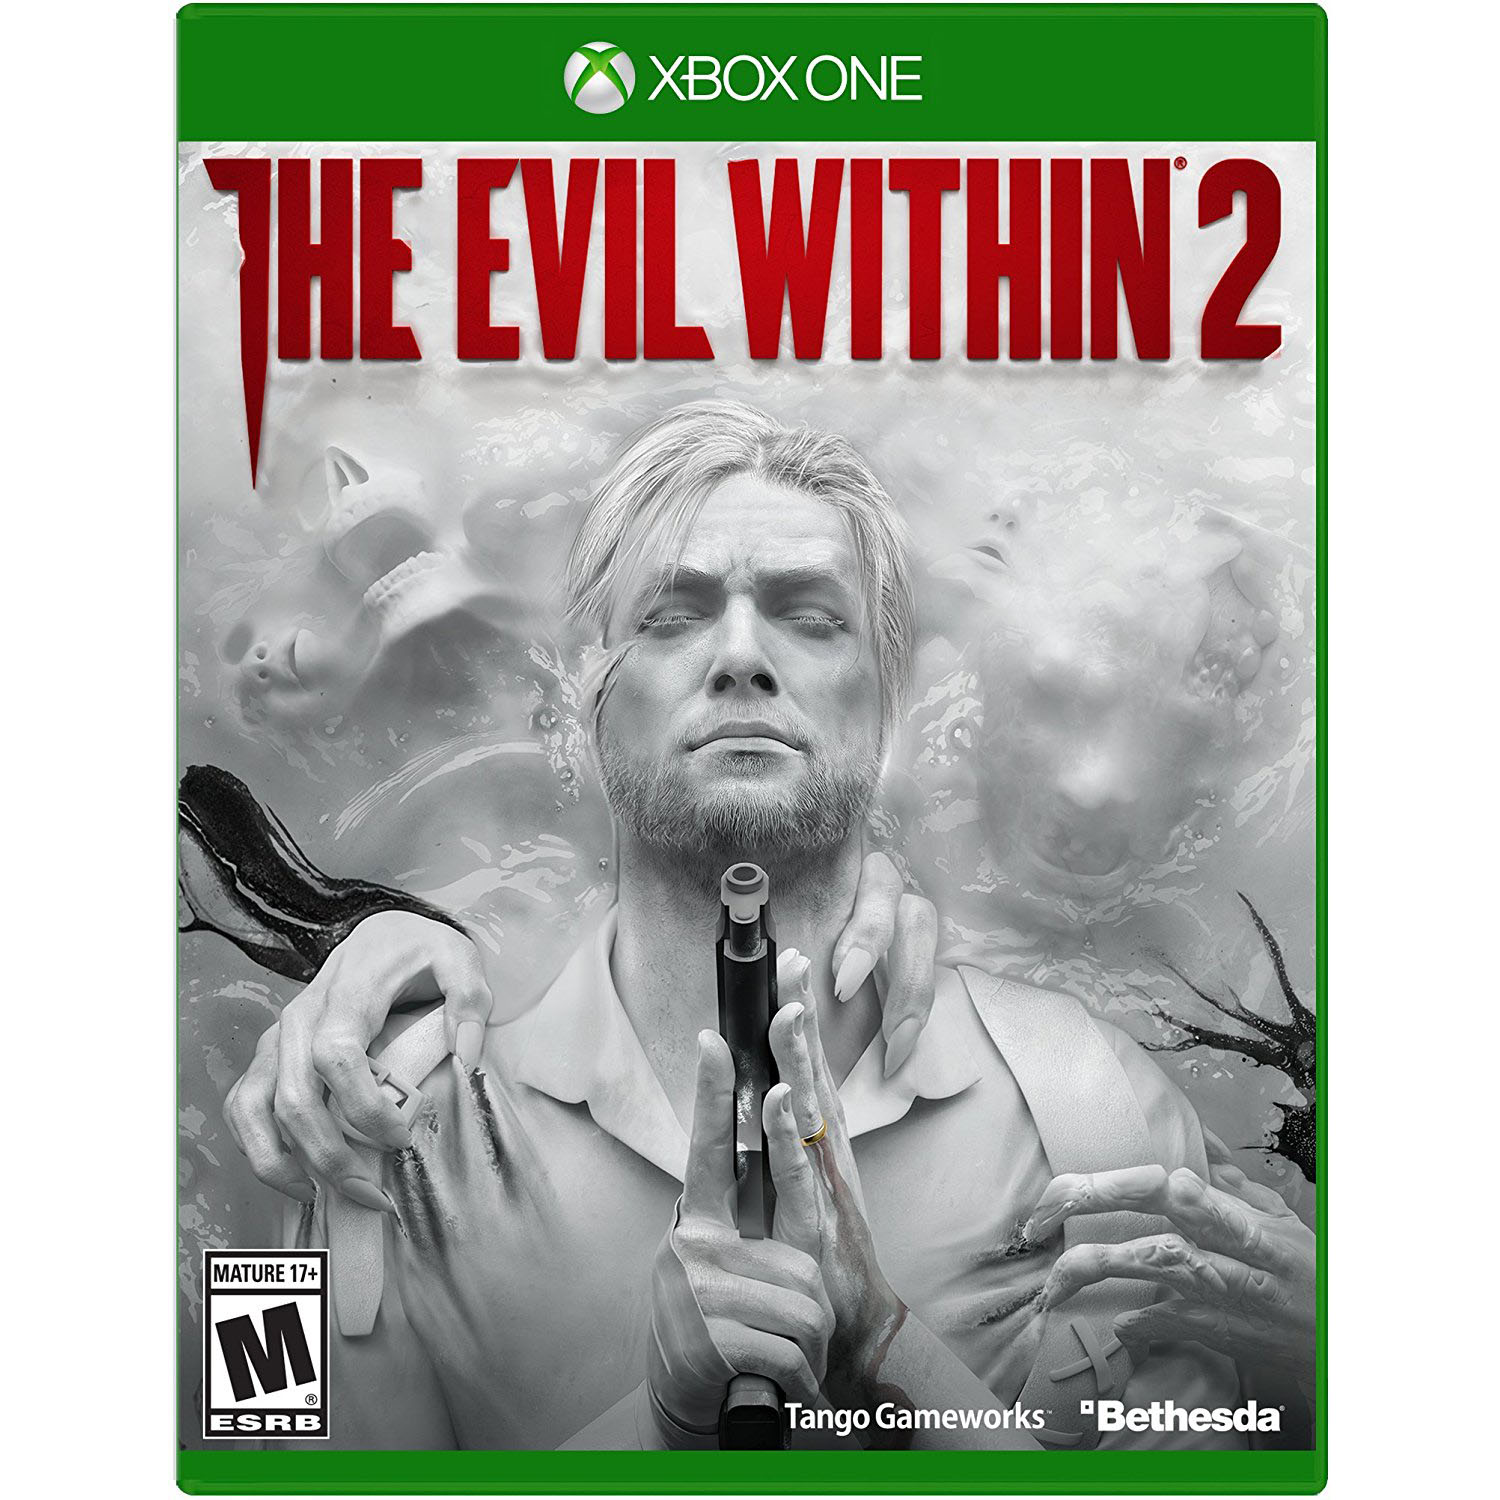 The Evil Within 2, Bethesda, Xbox One, 093155172319